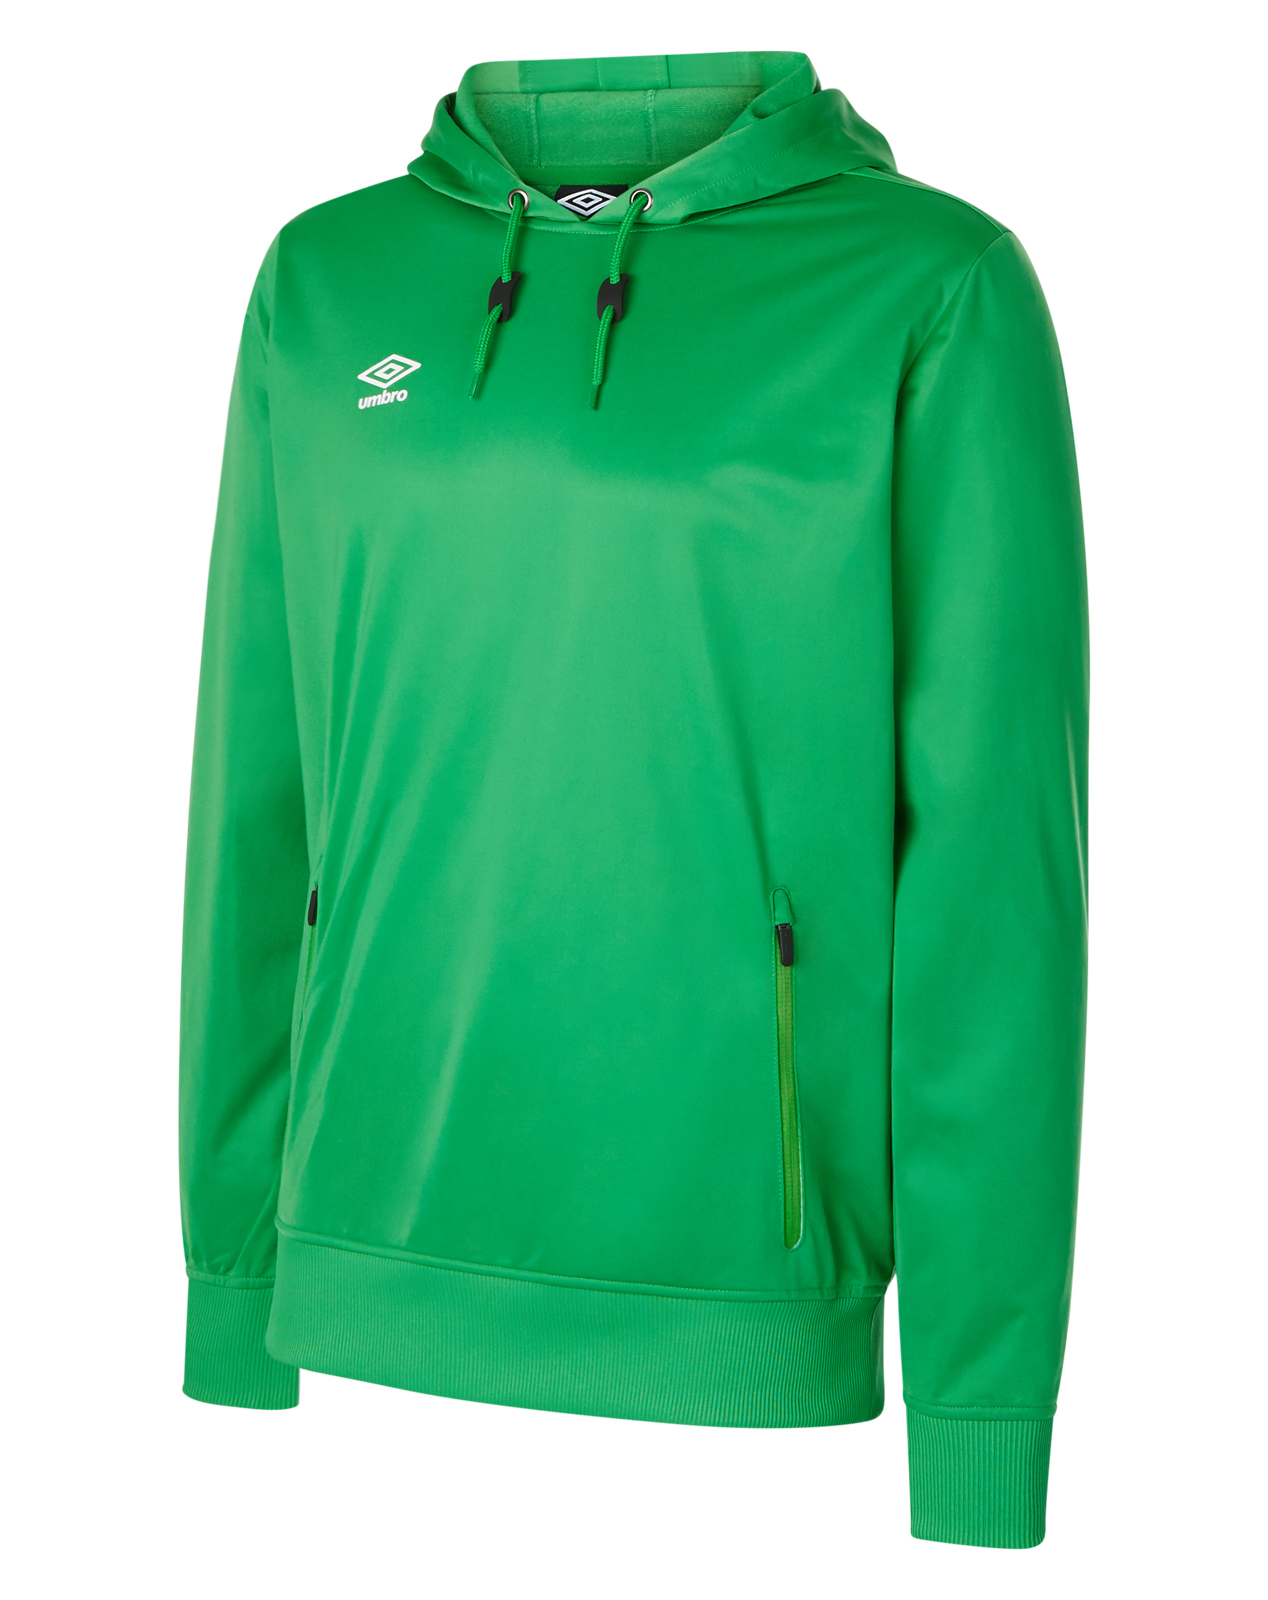 7f64d497 Umbro Club Essential Poly hood in TW Emerald green with white Umbro logo  print on the